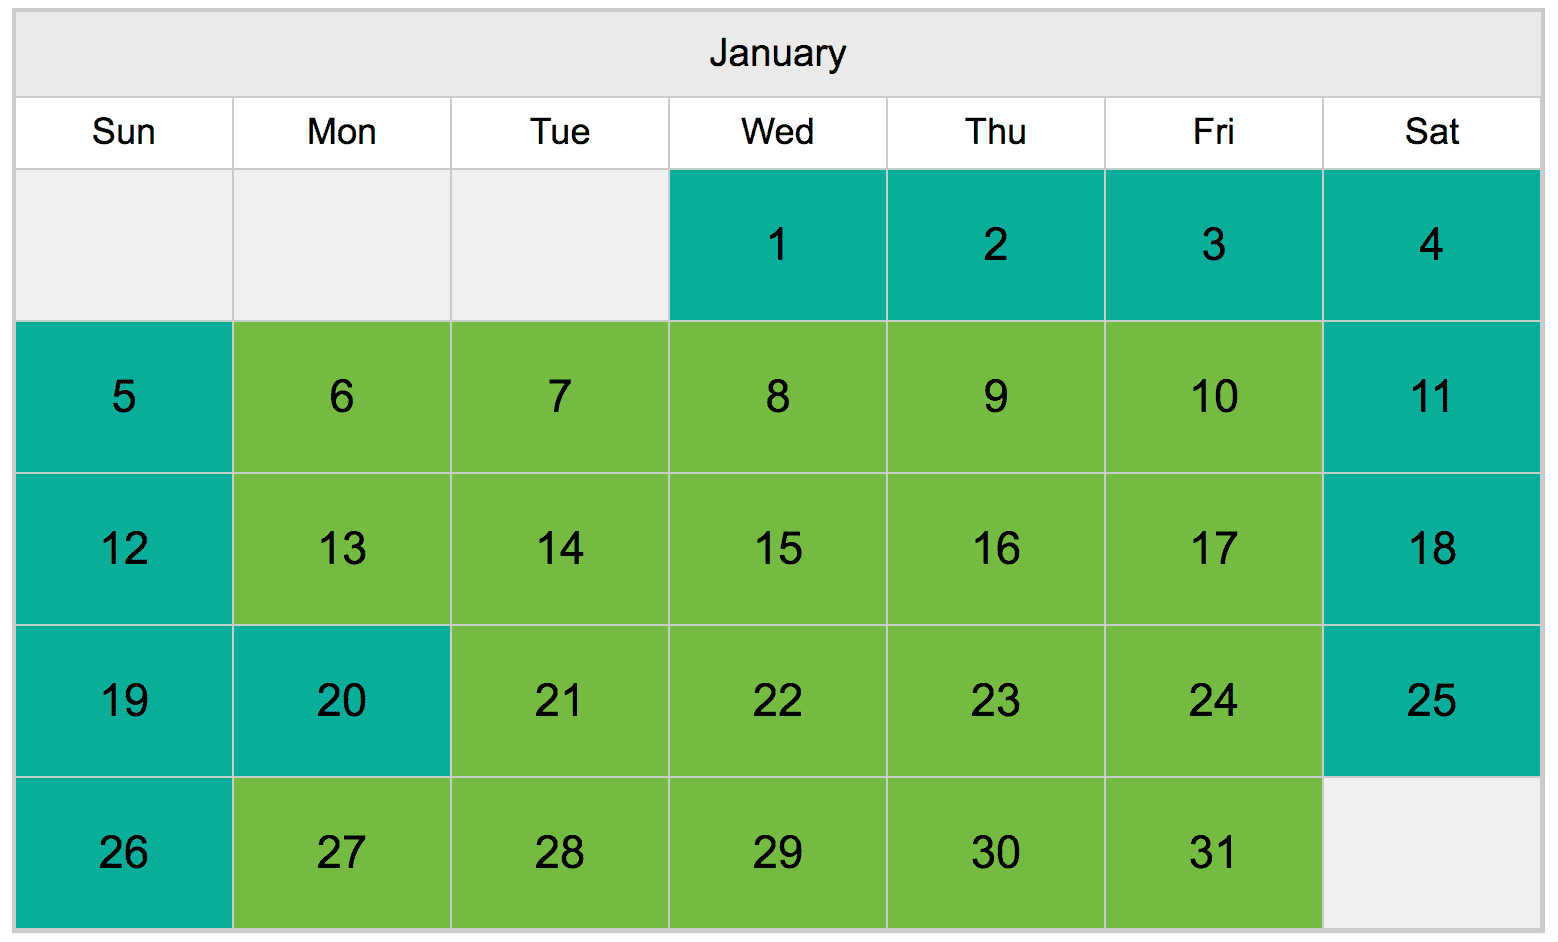 A calendar that shows pricing for Signature Encounters at ZooTampa on each day